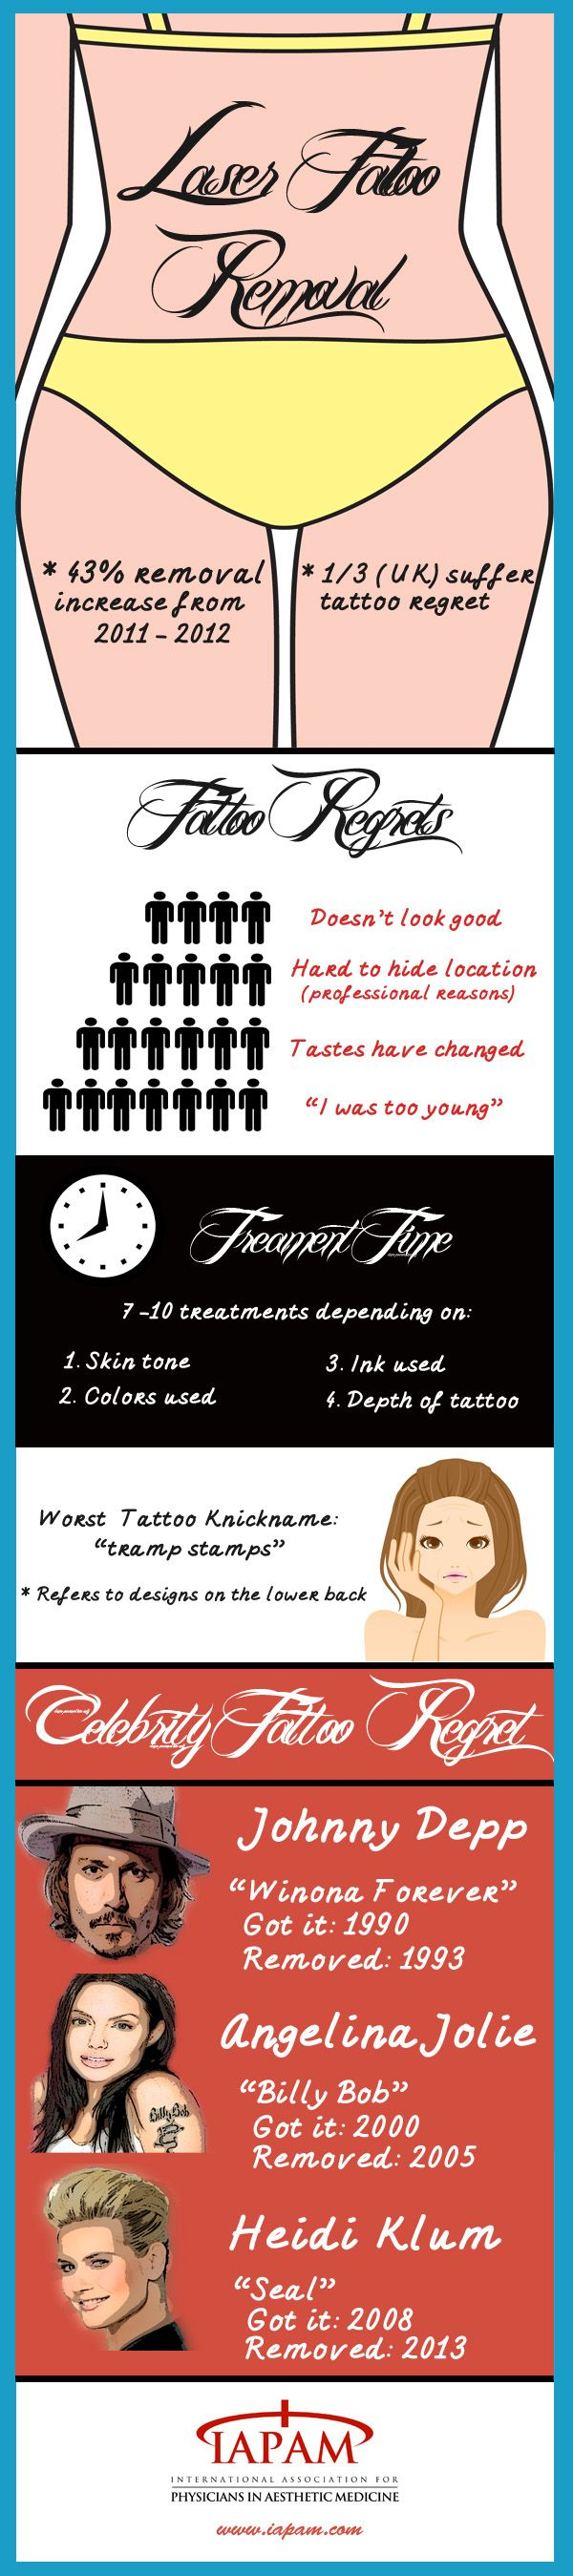 Doctors are seeing more and more people who want their tattoos removed, often because they worry that the tattoos could cause problems with employment. Laser treatments are currently the most common and effective method for removing tattoos. This infographic gives an overview of tattoo regrets, treatment times, and celebrity tattoos.